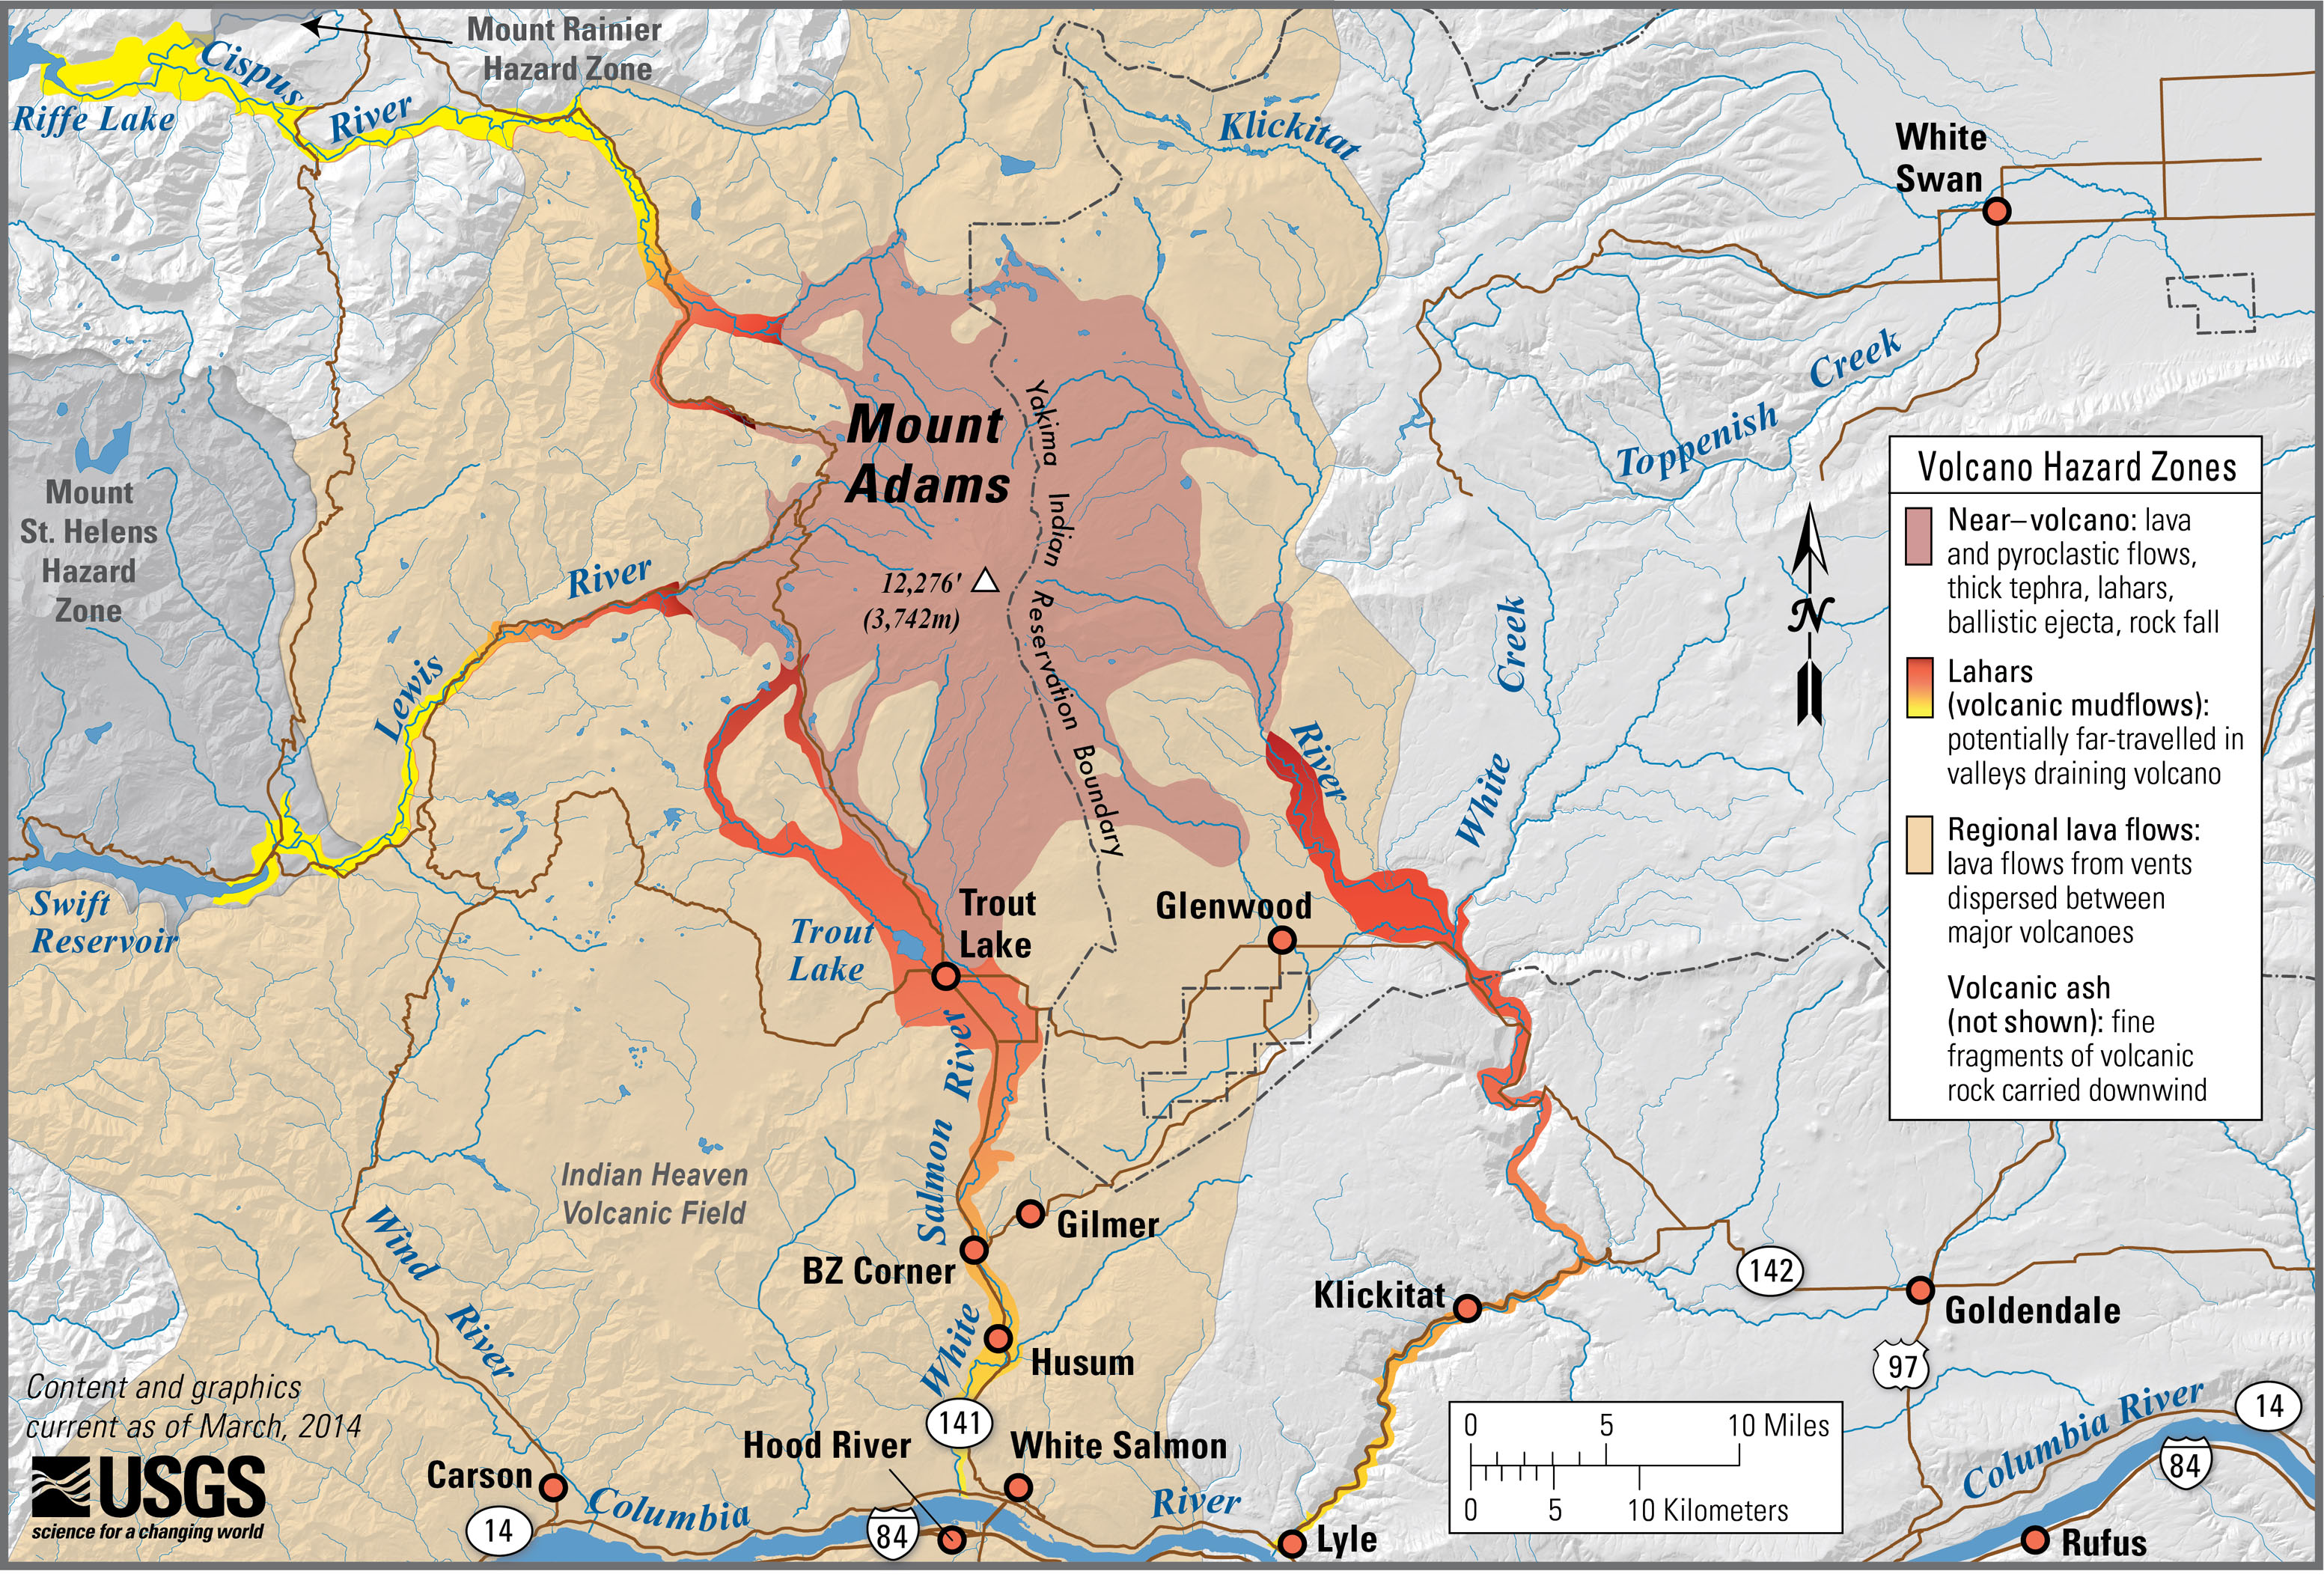 Volcanic hazard map of Mt. Adams, Washington. Image credit: Lisa Faust, U.S. Geological Survey